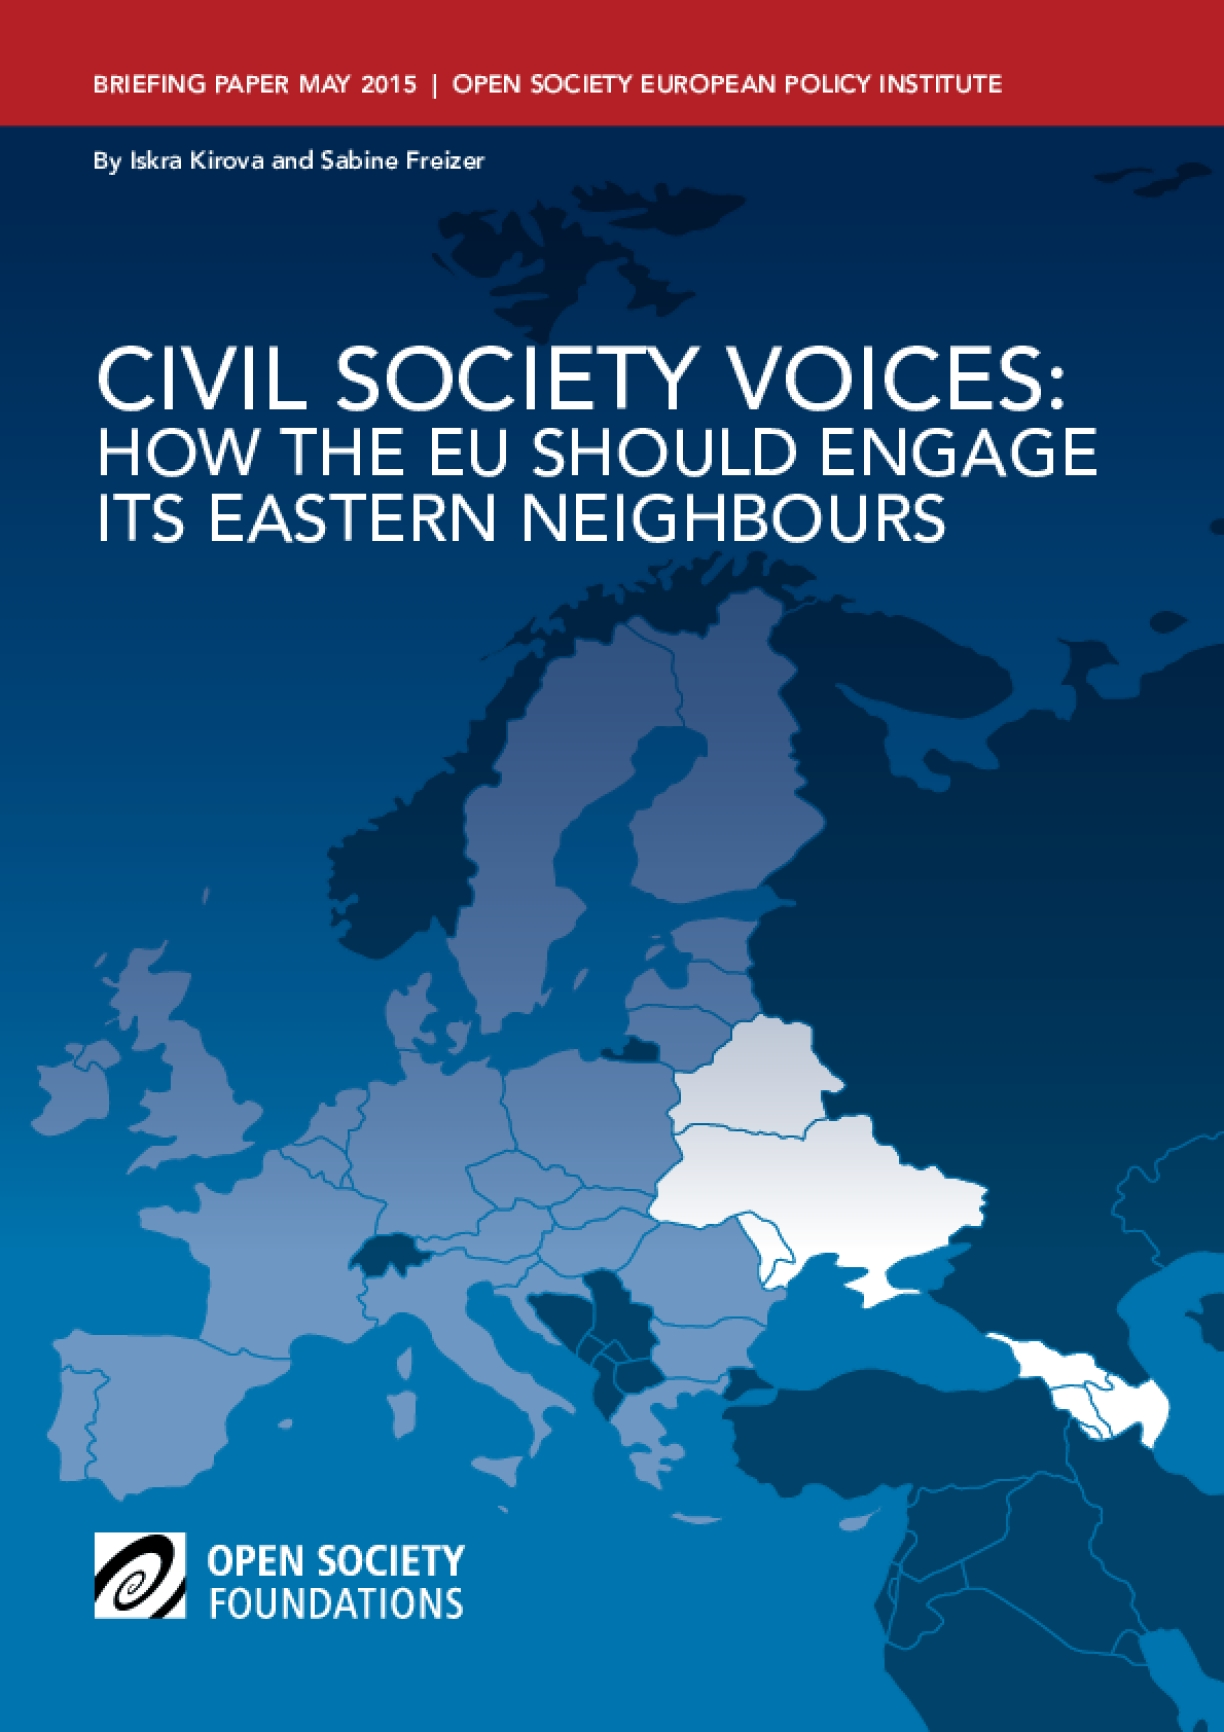 Civil Society Voices: How the EU Should Engage Its Eastern Neighbours